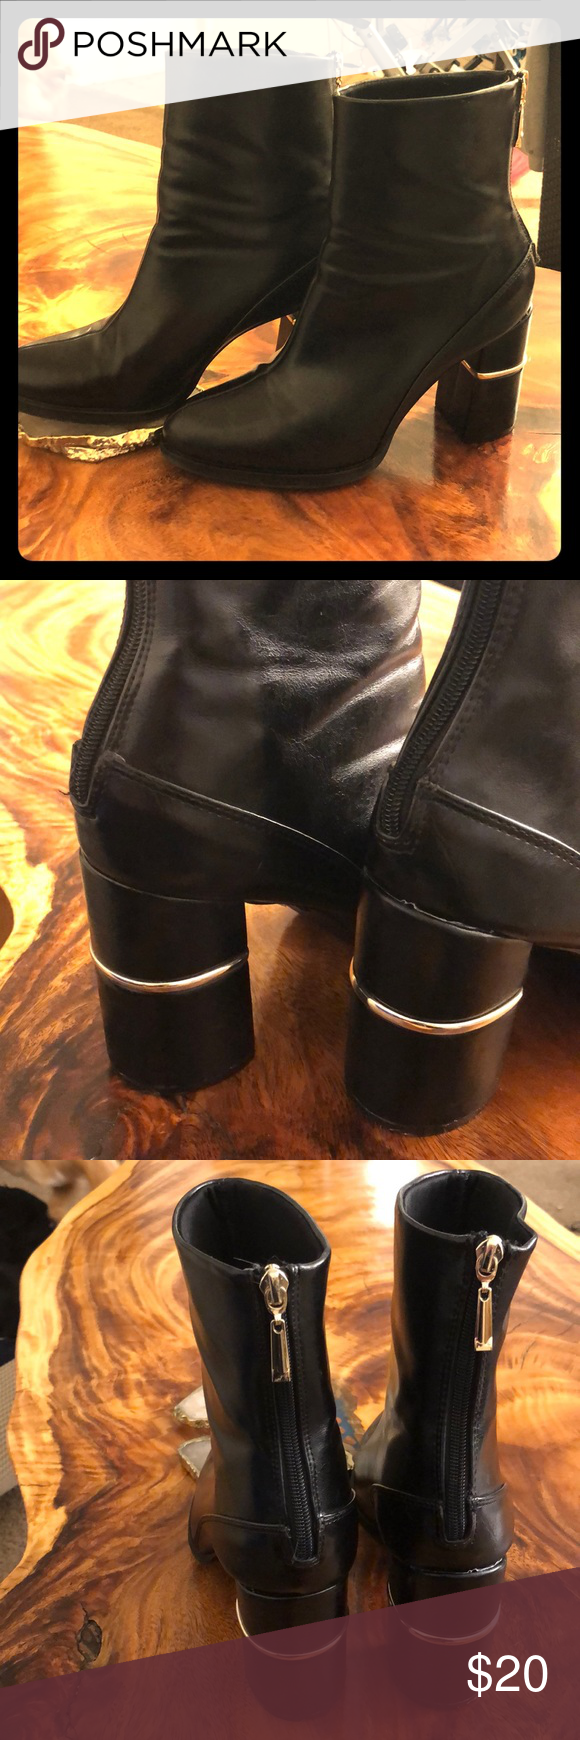 Black booties Make a statement in the subtlest of ways with these black boots with gold bling. Perfect for skinny jeans and mini skirts for the fall season! Forever 21 Shoes Ankle Boots & Booties #skinnyjeansandankleboots Black booties Make a statement in the subtlest of ways with these black boots with gold bling. Perfect for skinny jeans and mini skirts for the fall season! Forever 21 Shoes Ankle Boots & Booties #skinnyjeansandankleboots Black booties Make a statement in the subtlest of ways w #skinnyjeansandankleboots